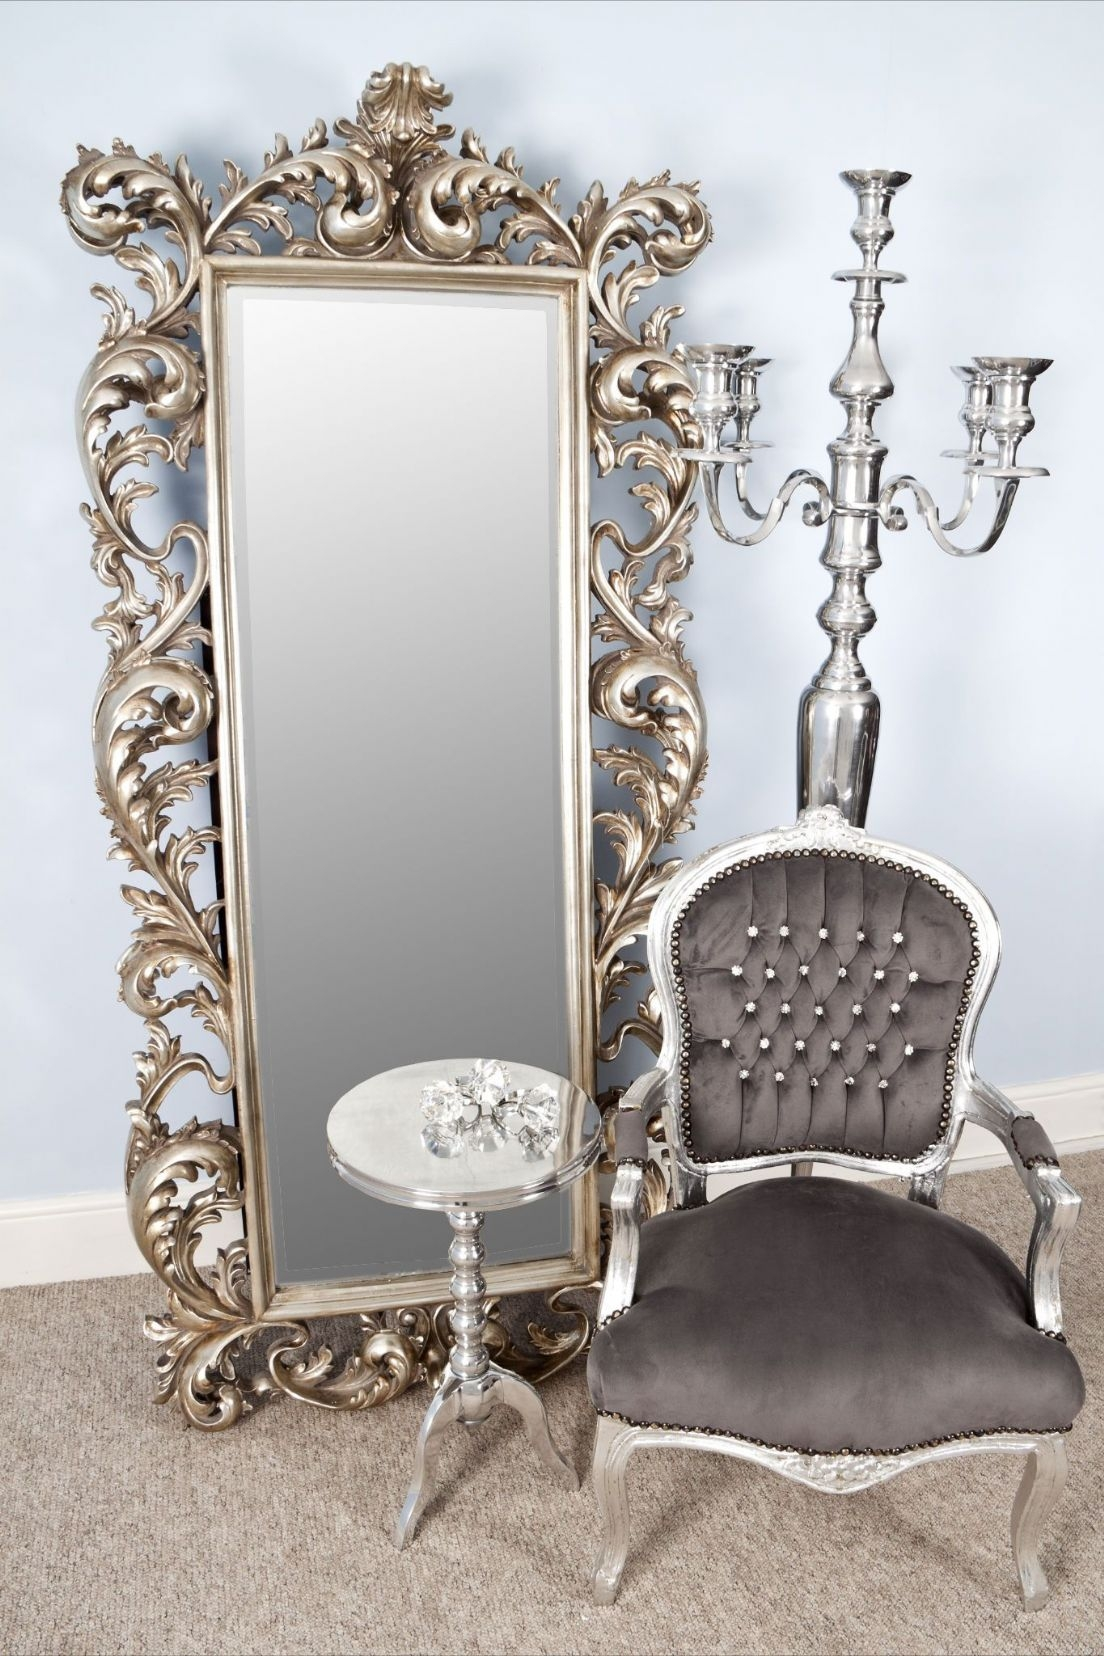 Bedroom Appealing Oversized Mirrors For Home Decoration Ideas Inside Vintage Mirror For Sale (View 14 of 15)